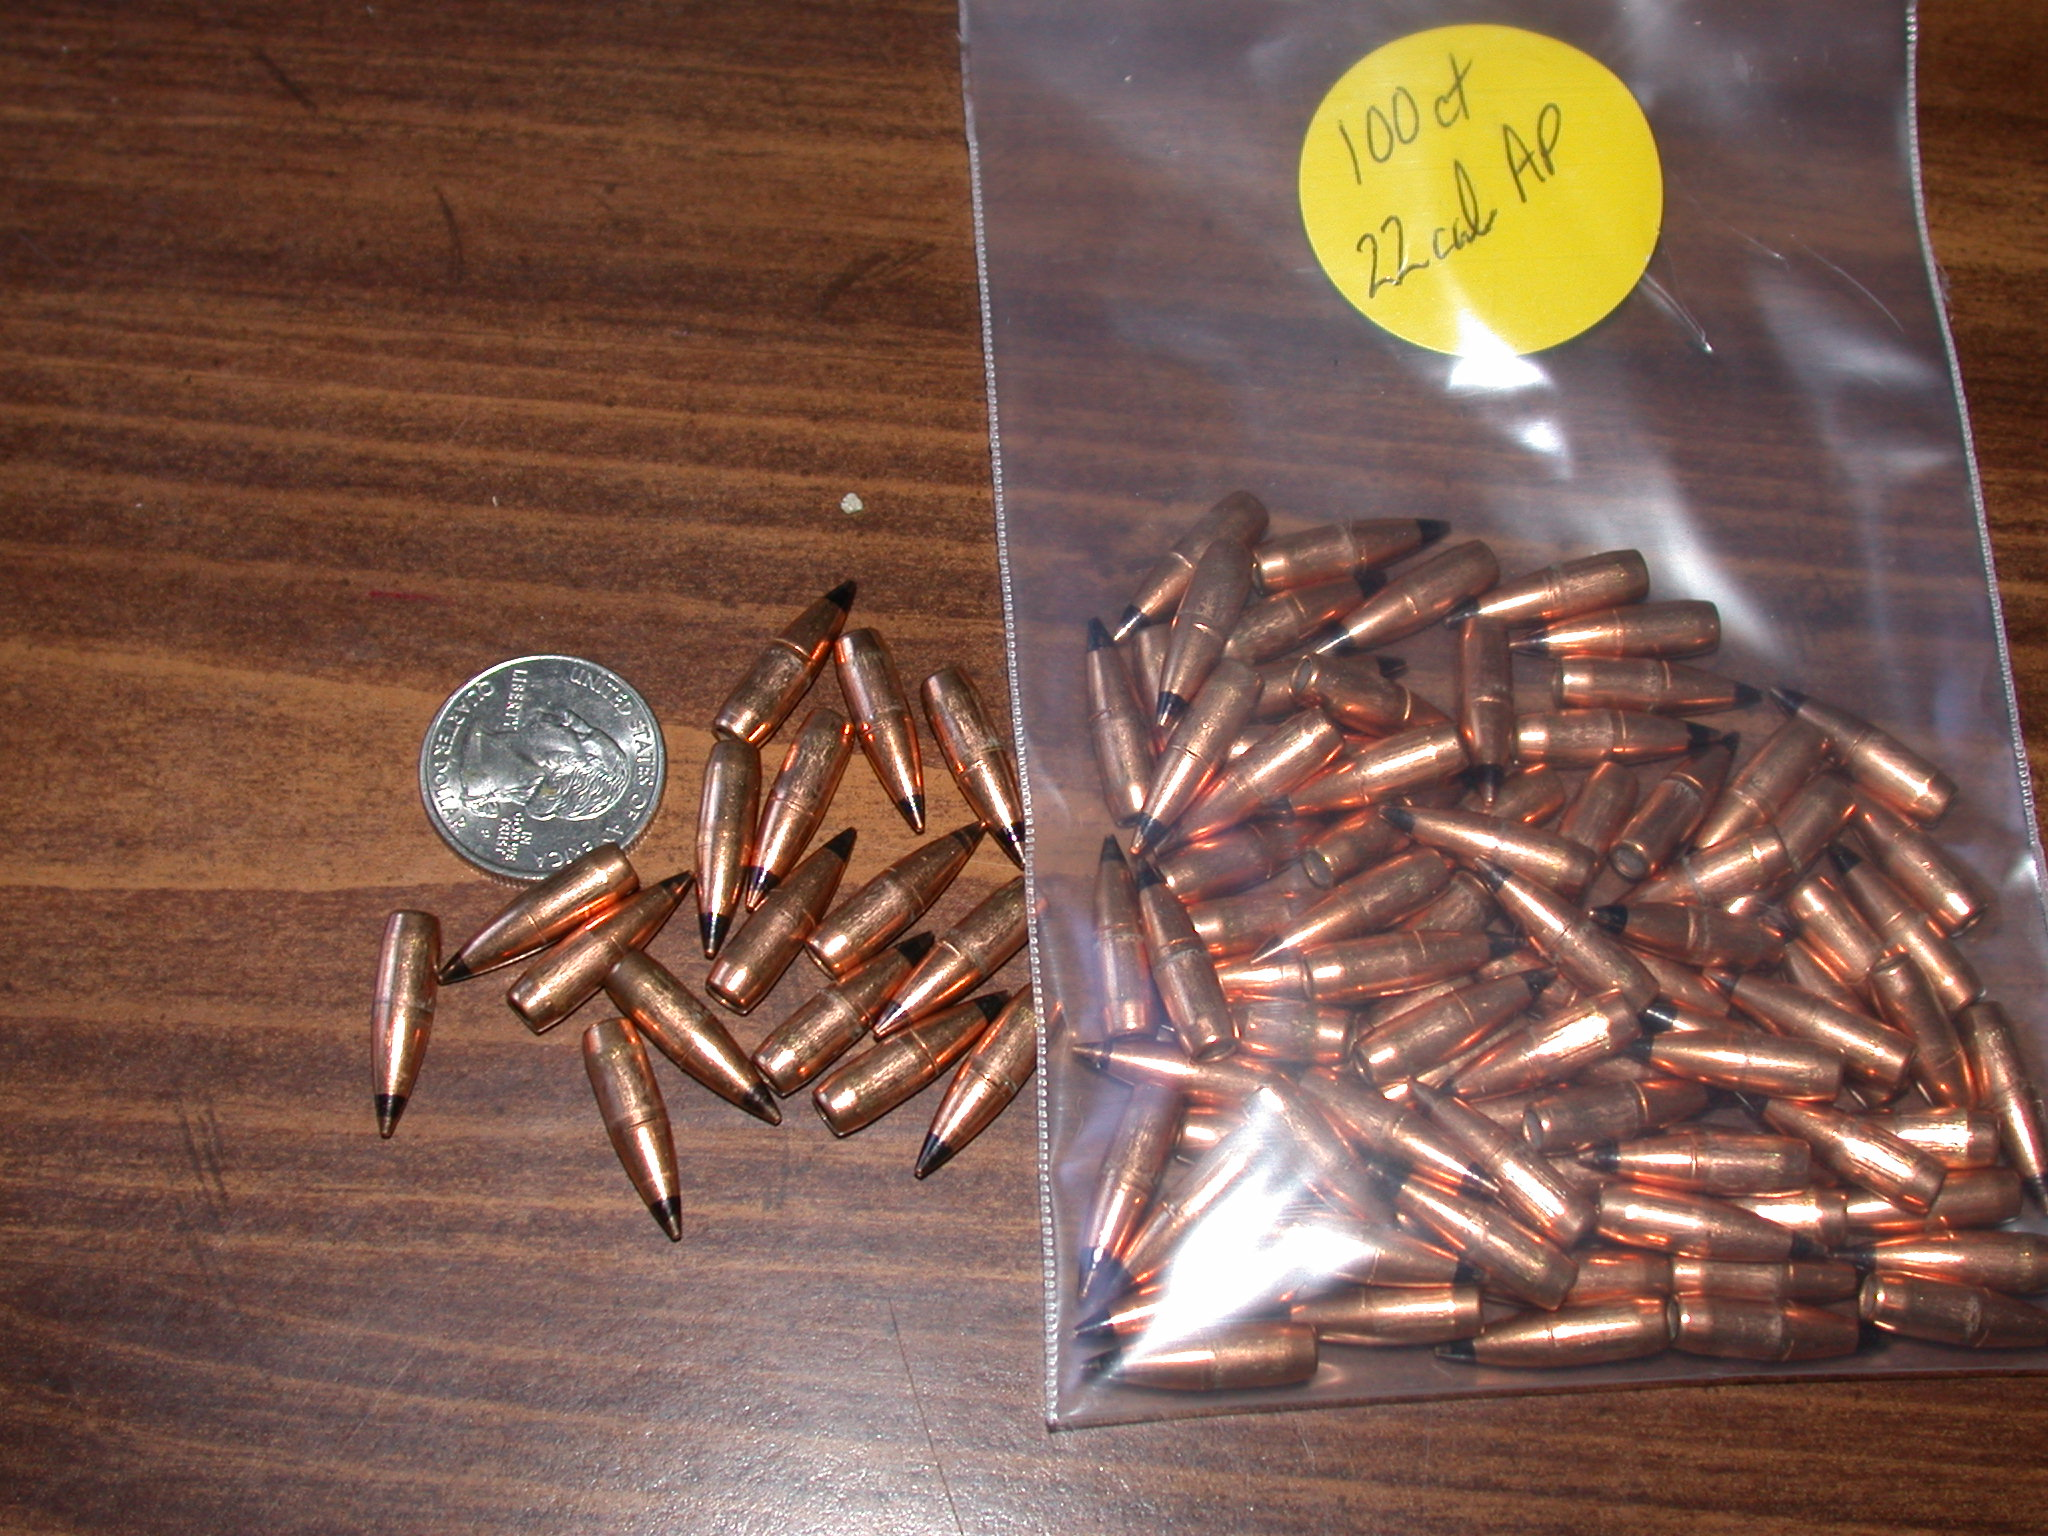 22 Cal AP projectiles